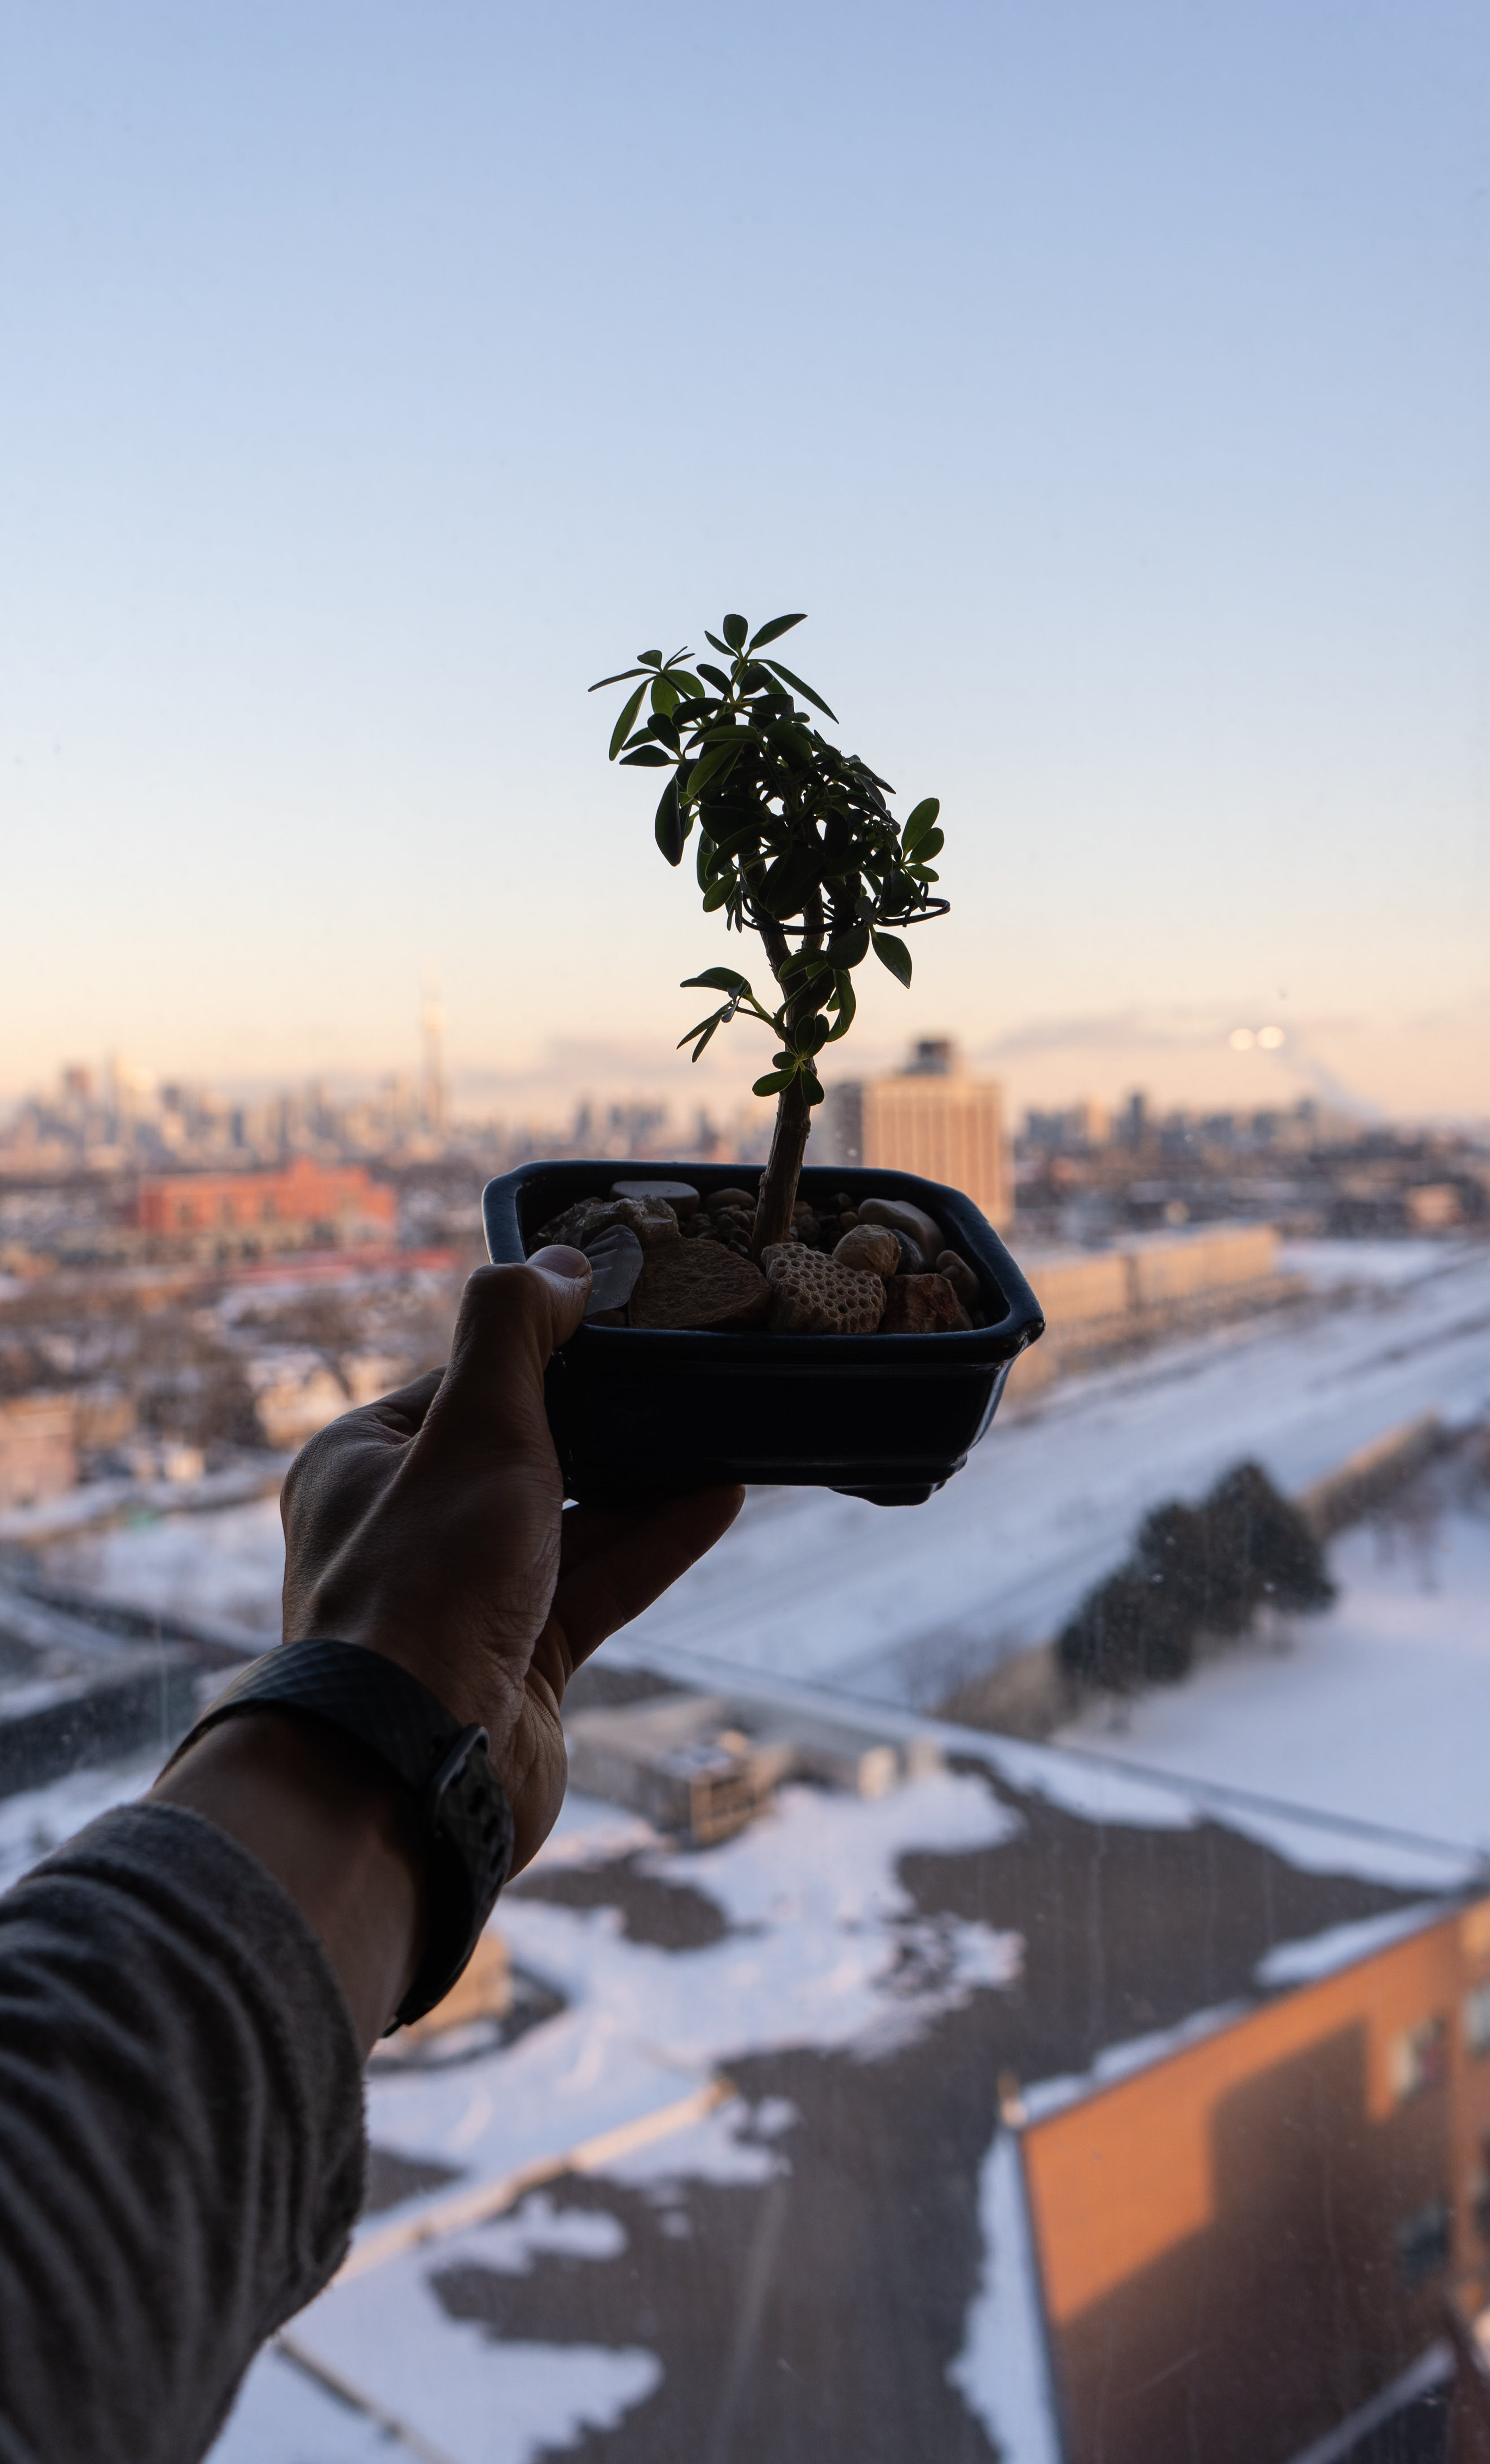 Free stock photo of bonsai, city view, indoor plants